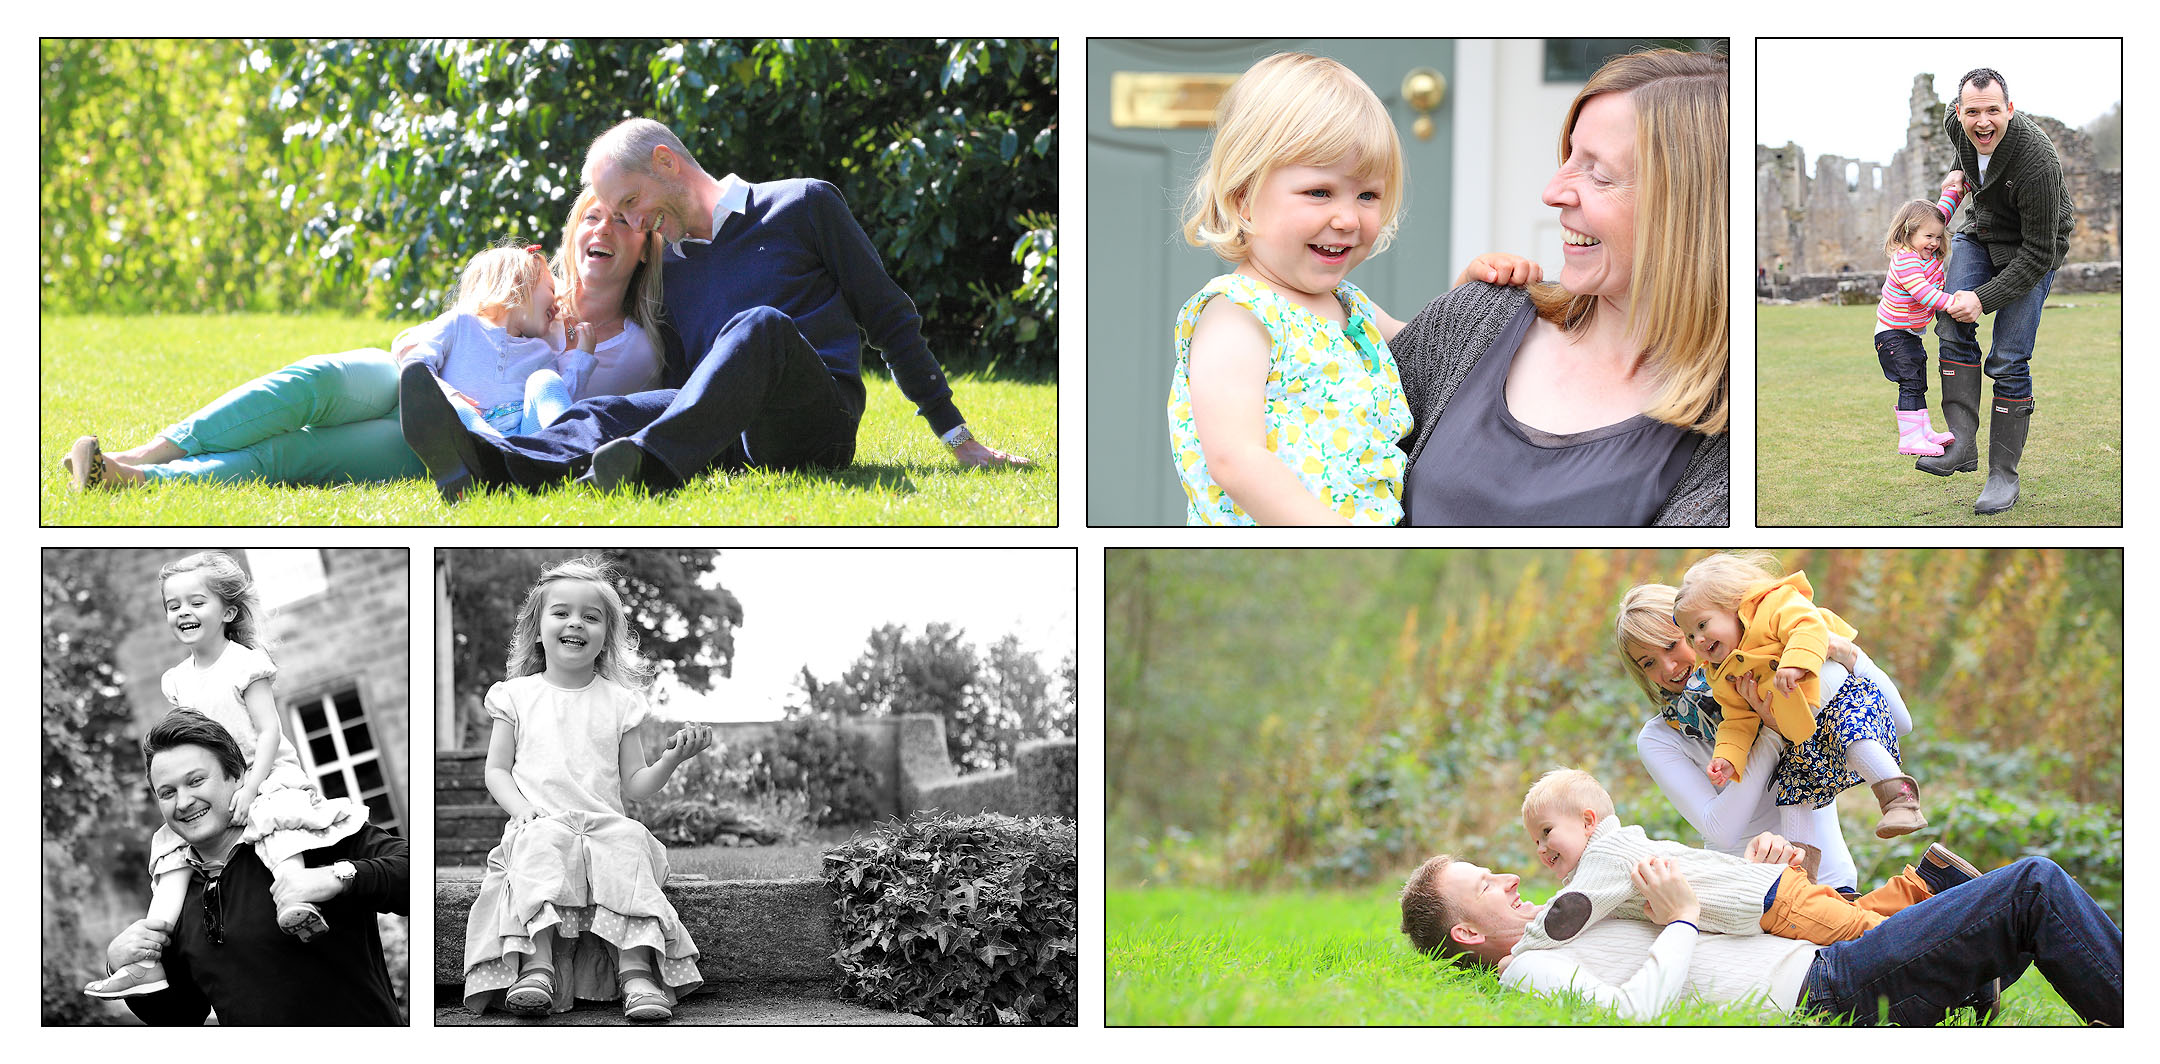 Family Portrait Photography In Leeds